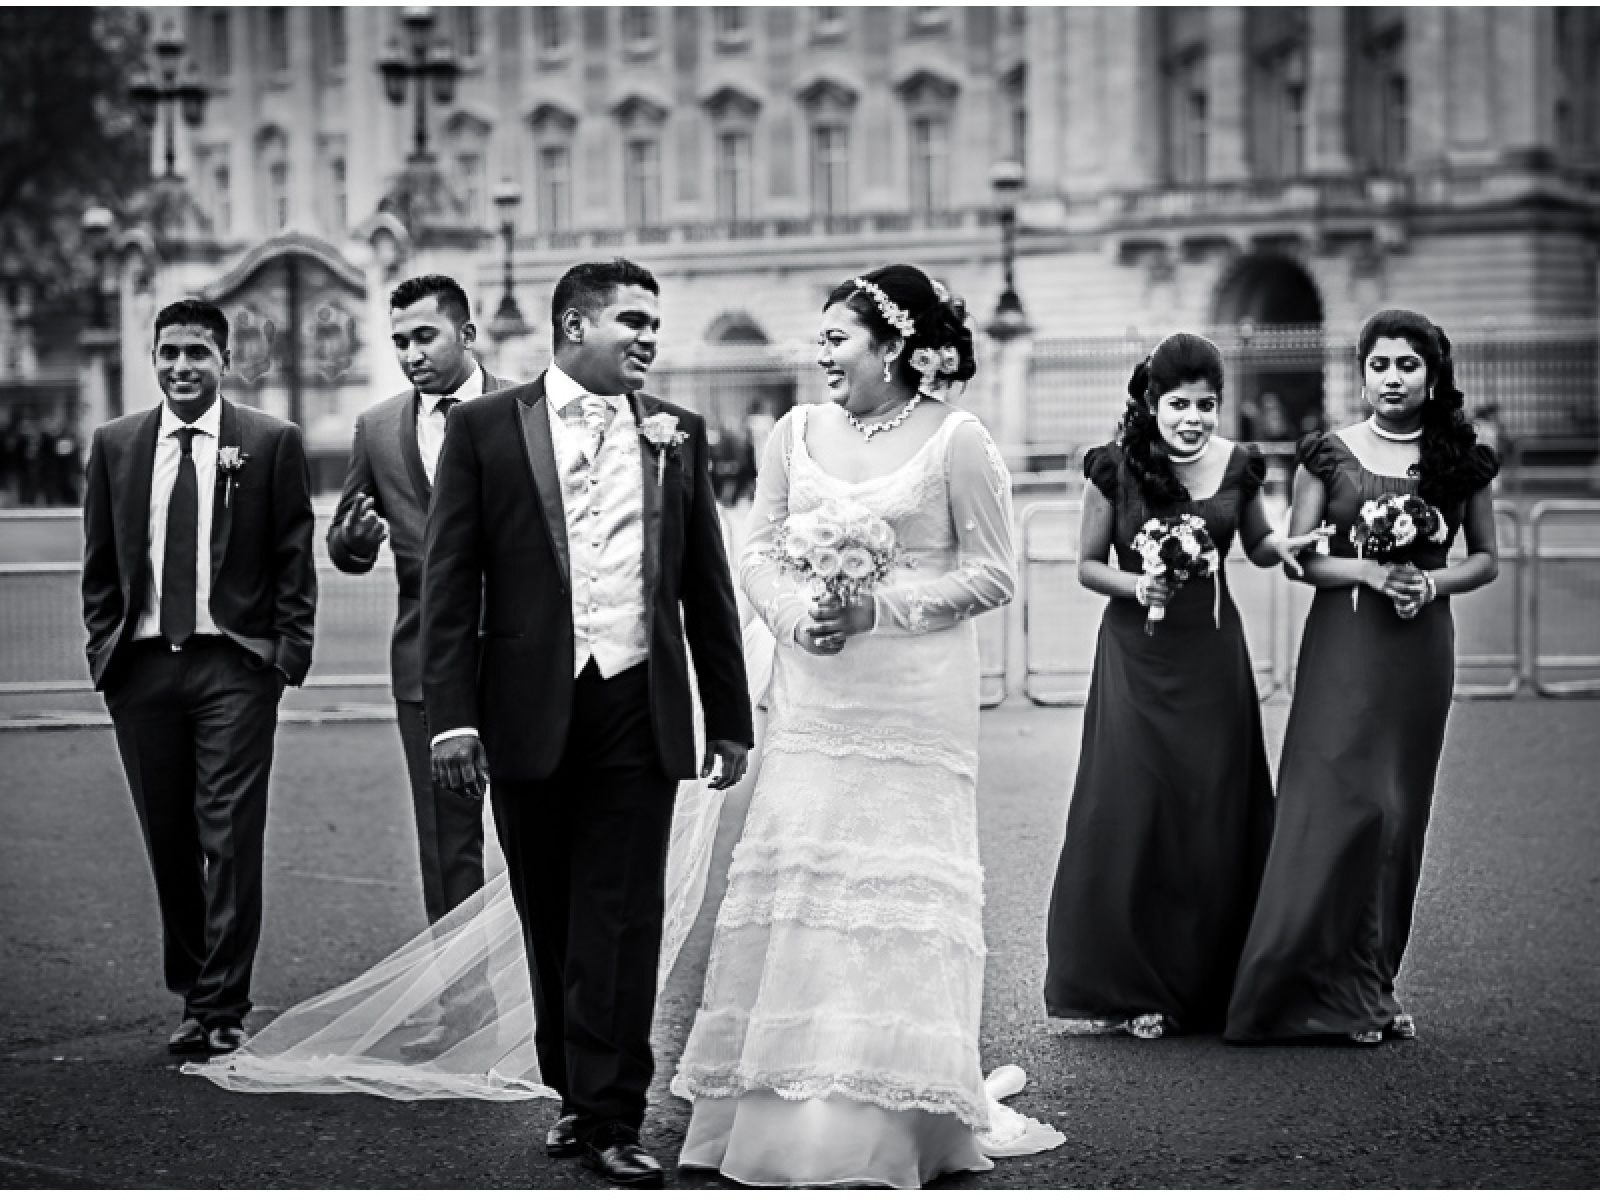 341 1600x1200 - Darshani and Anthony - wedding photographer in London